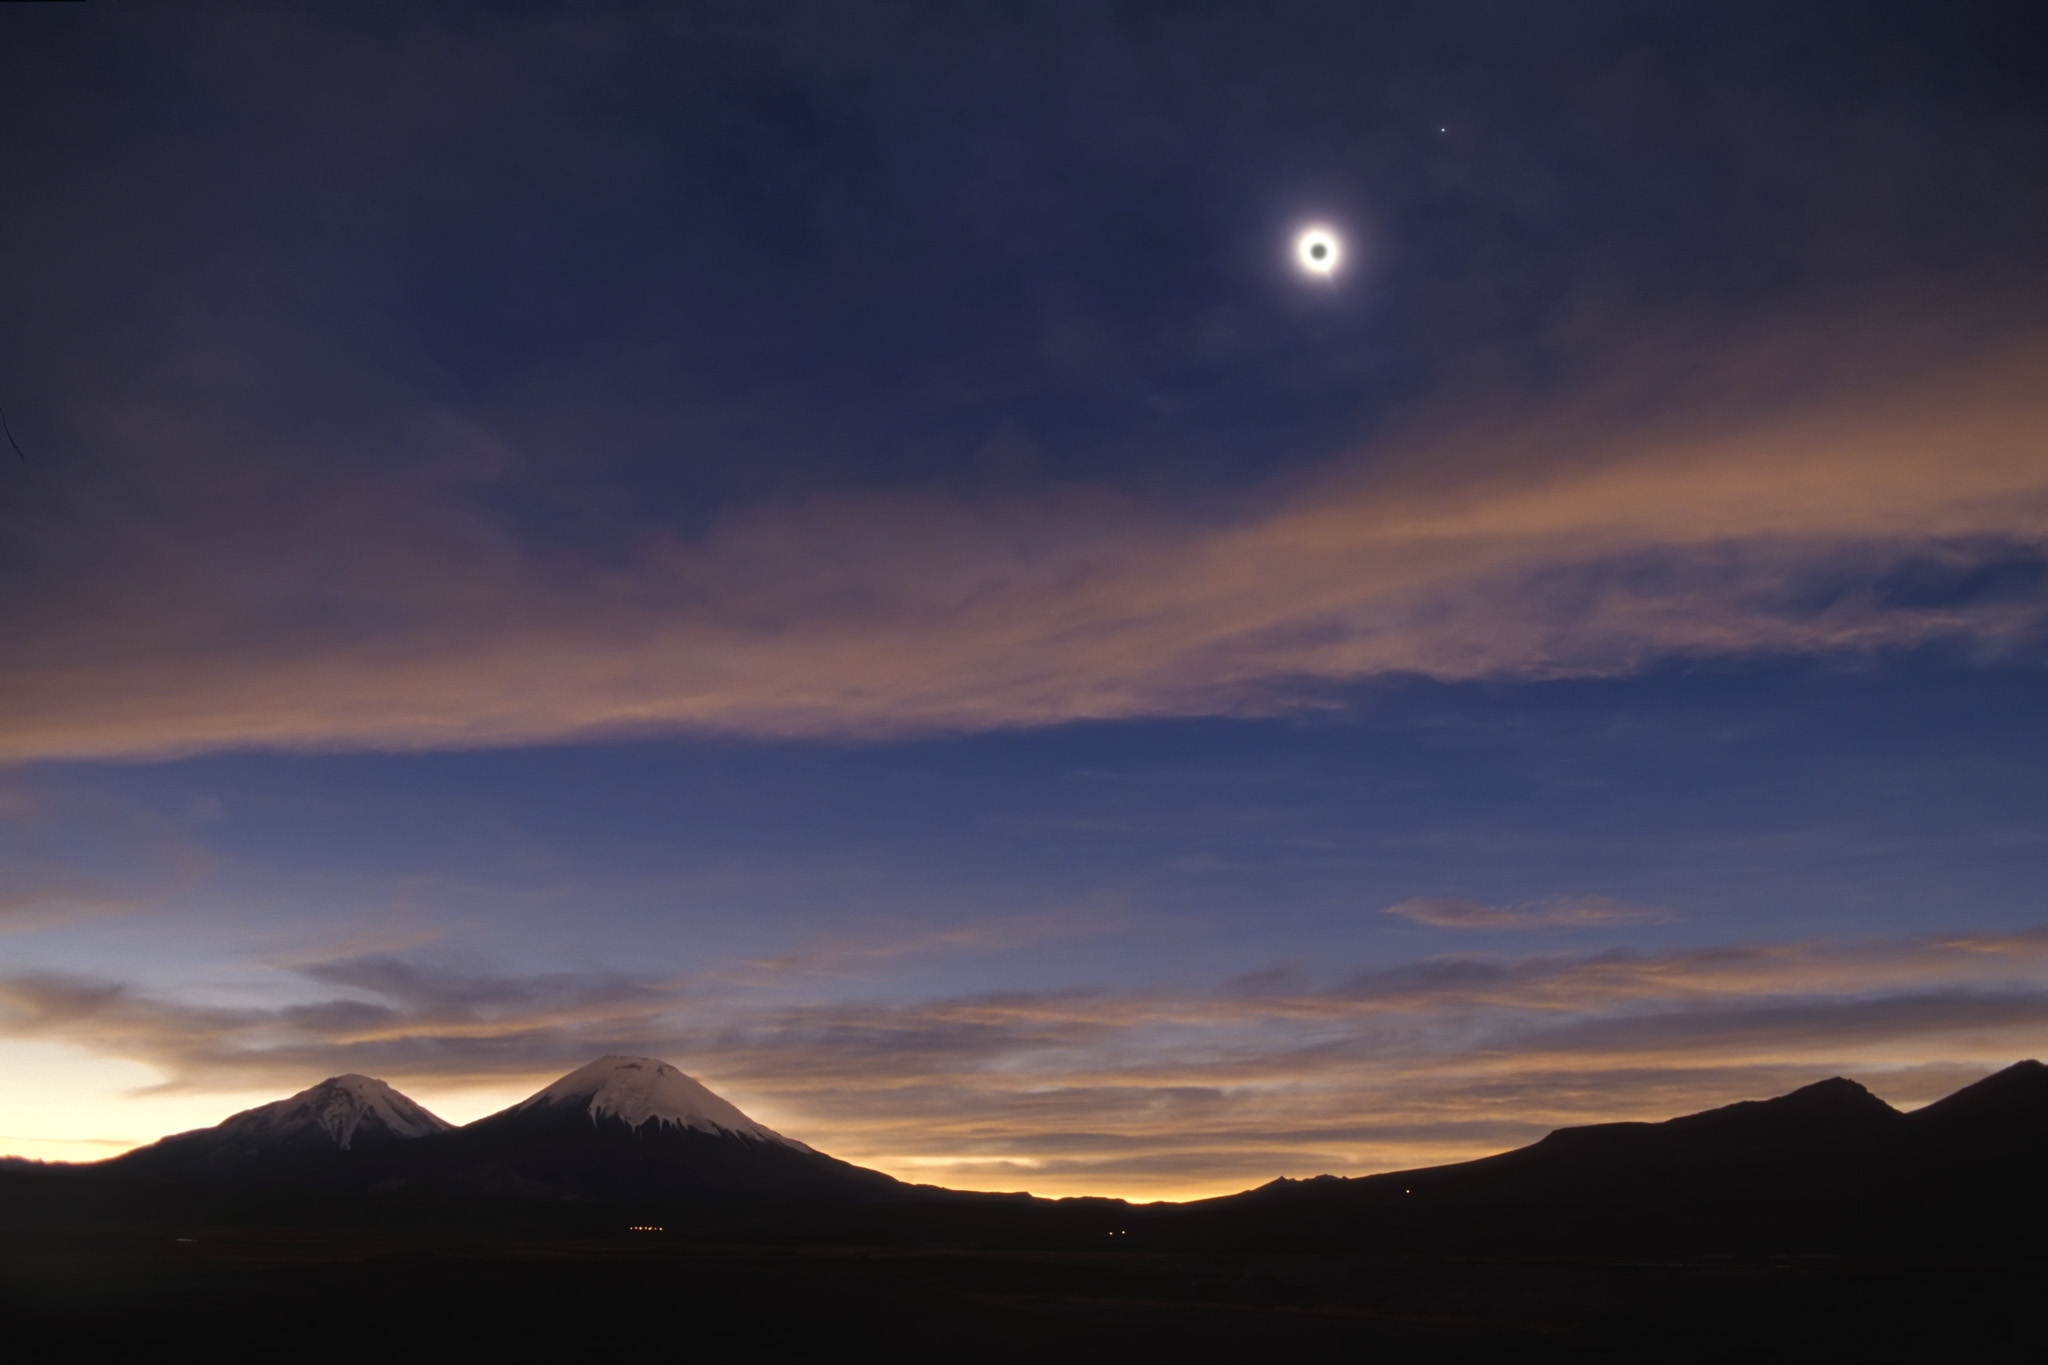 Total Eclipse from Chile